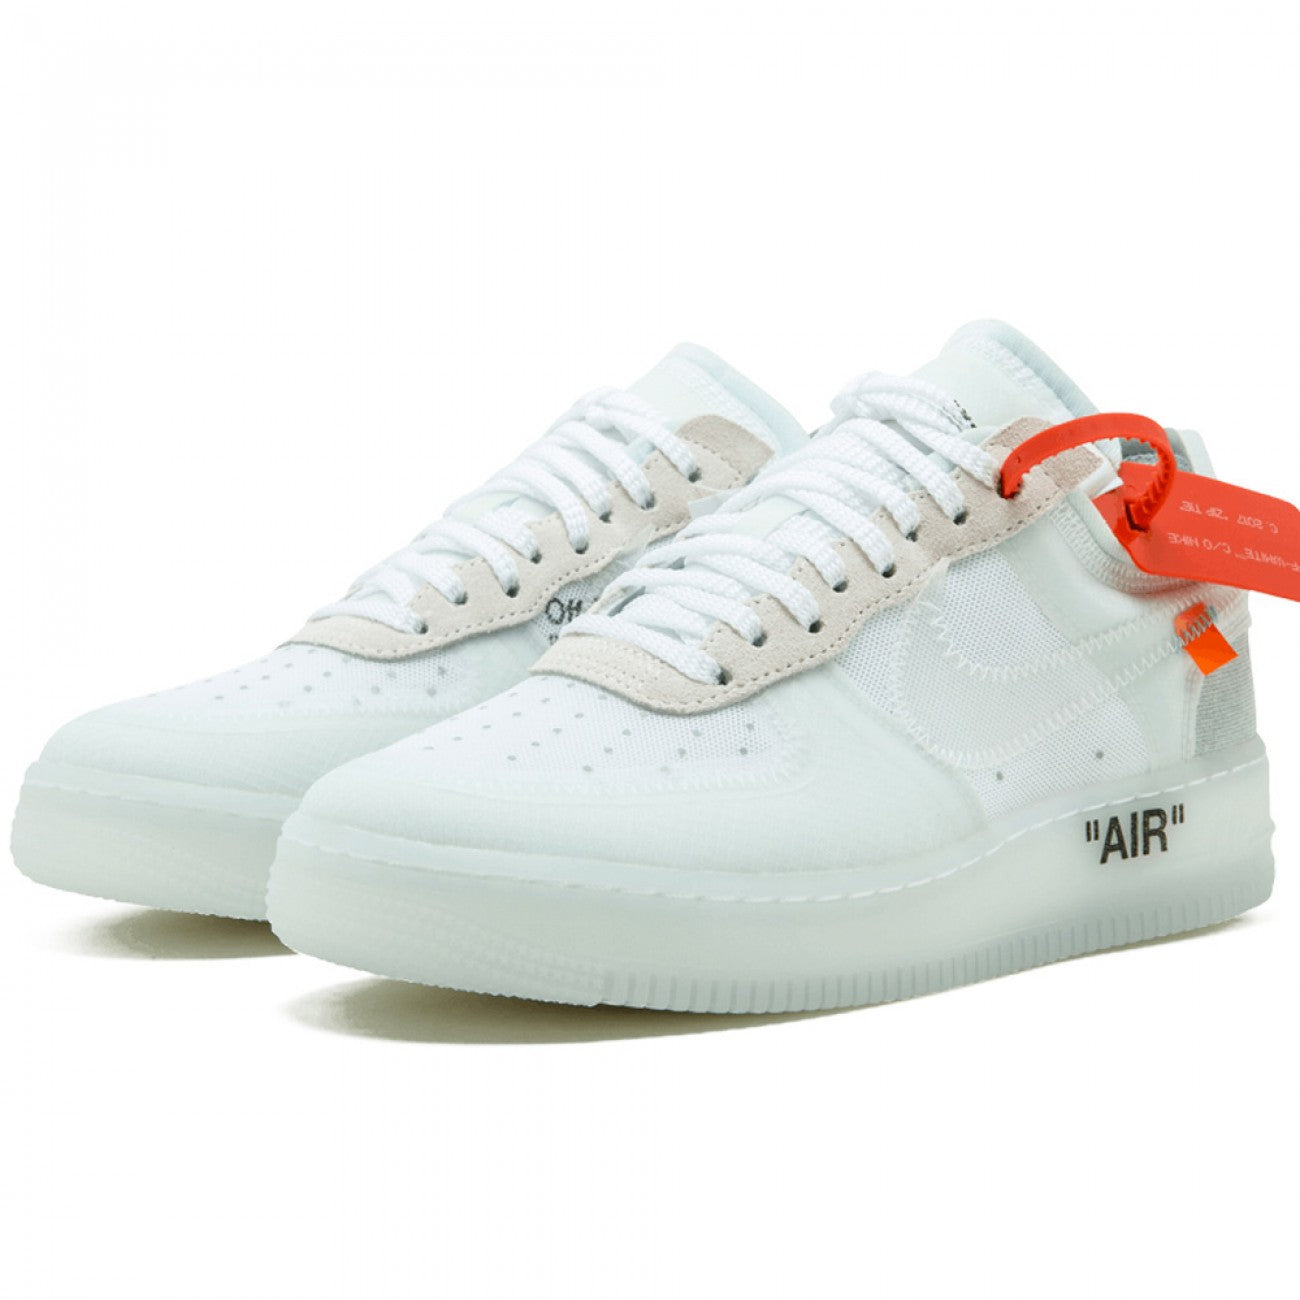 off white air force 1 uk52% OFF Nike Vapormax plus colors